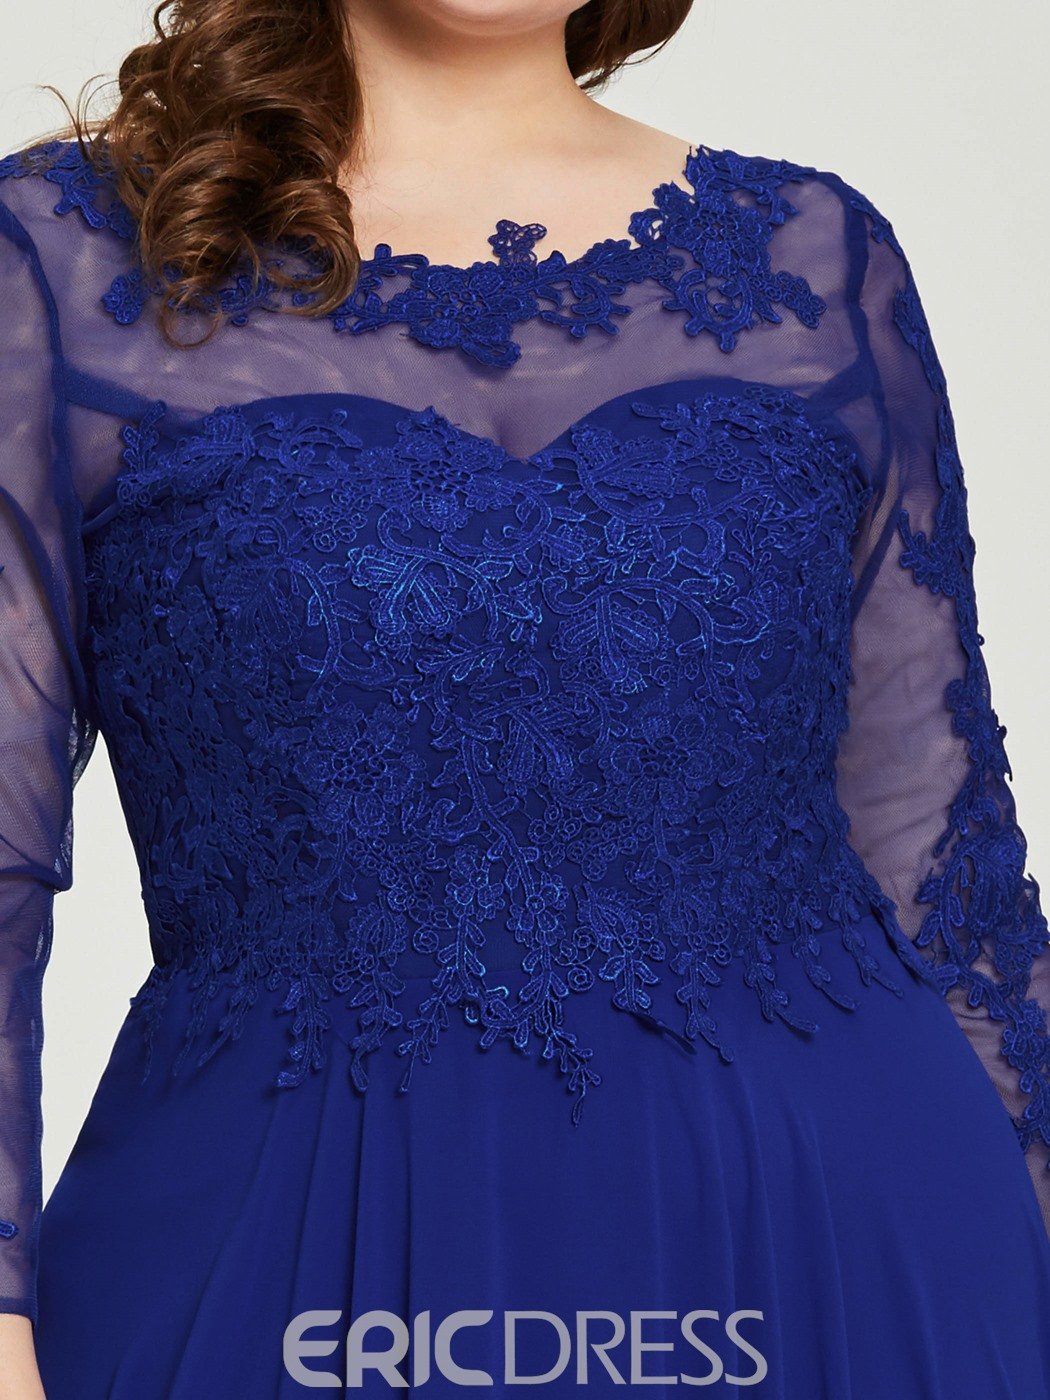 Ericdress Long Sleeves Lace Appliques Plus Size Evening Dress